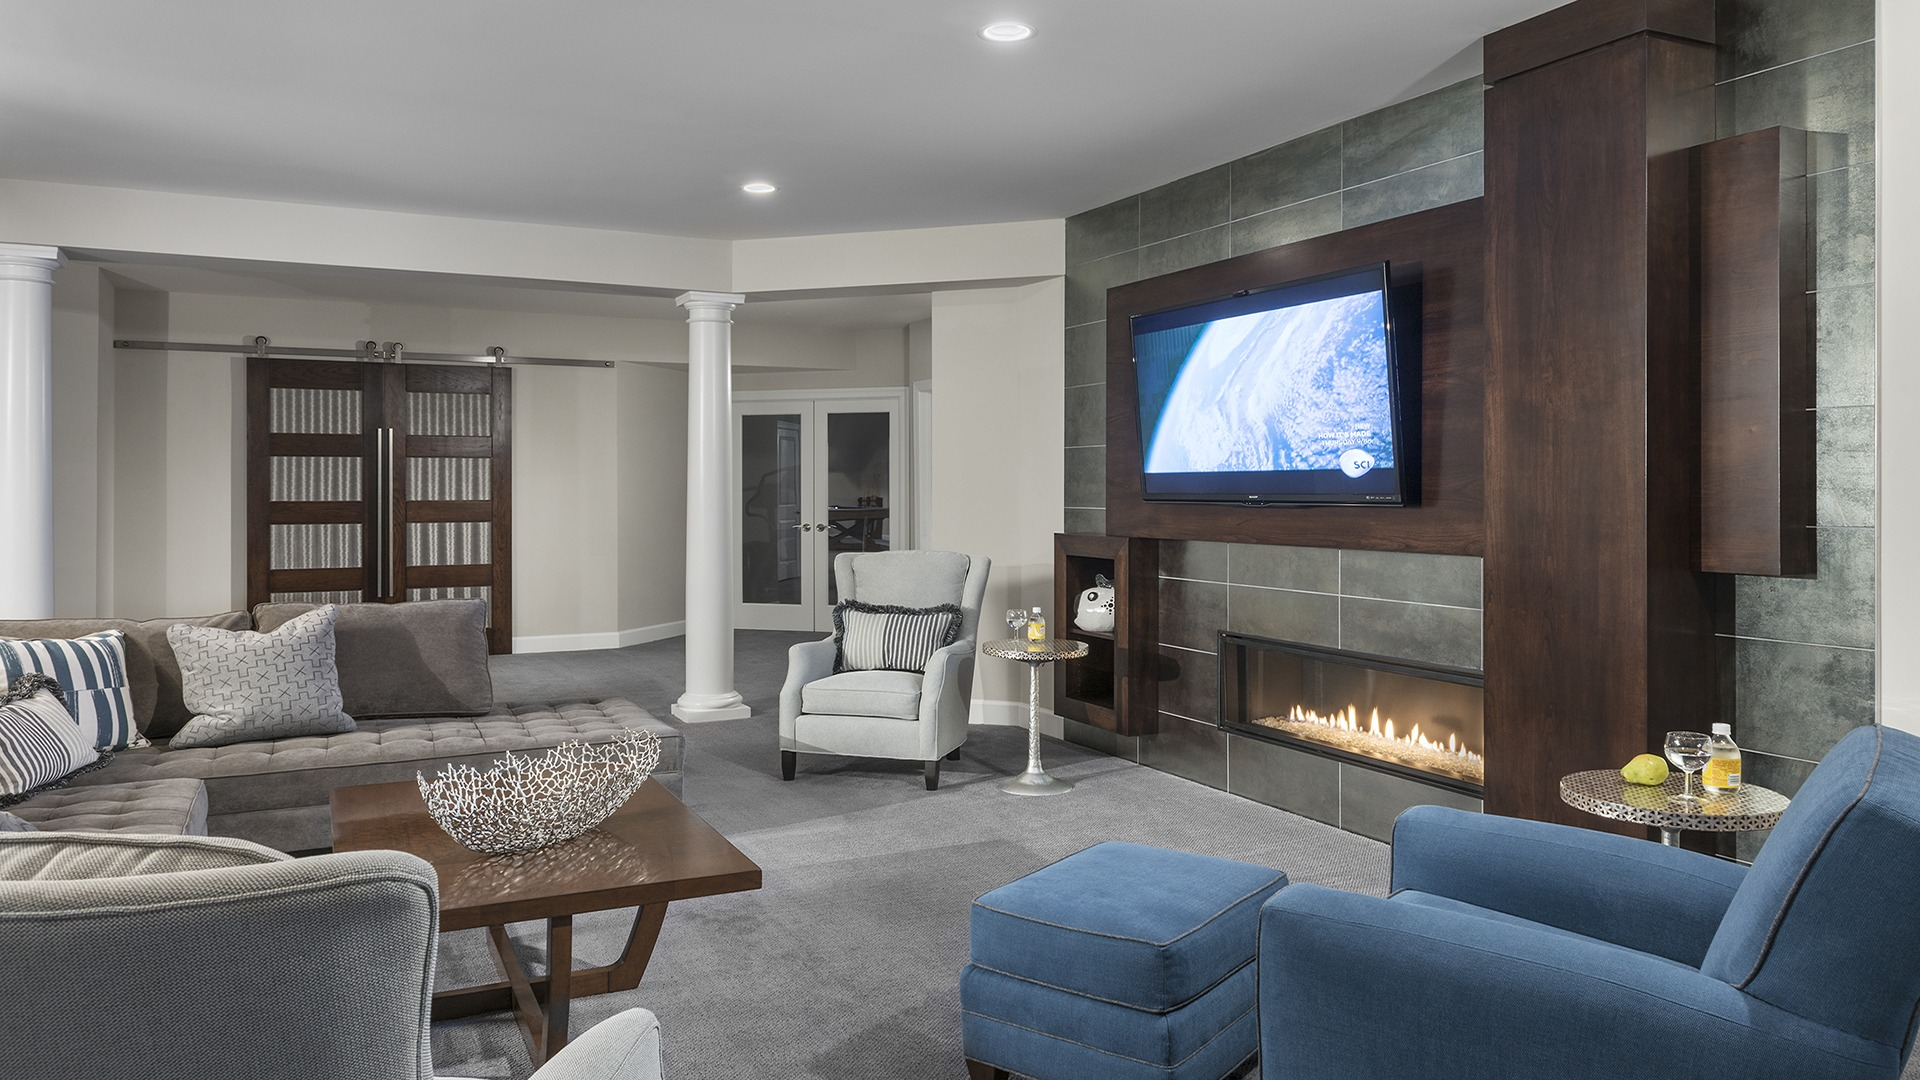 The Recreation Room in a Gulick | One home on Innsbruck Avenue. © Hoachlander-Davis Photography. All Rights Reserved. Used with Permission.